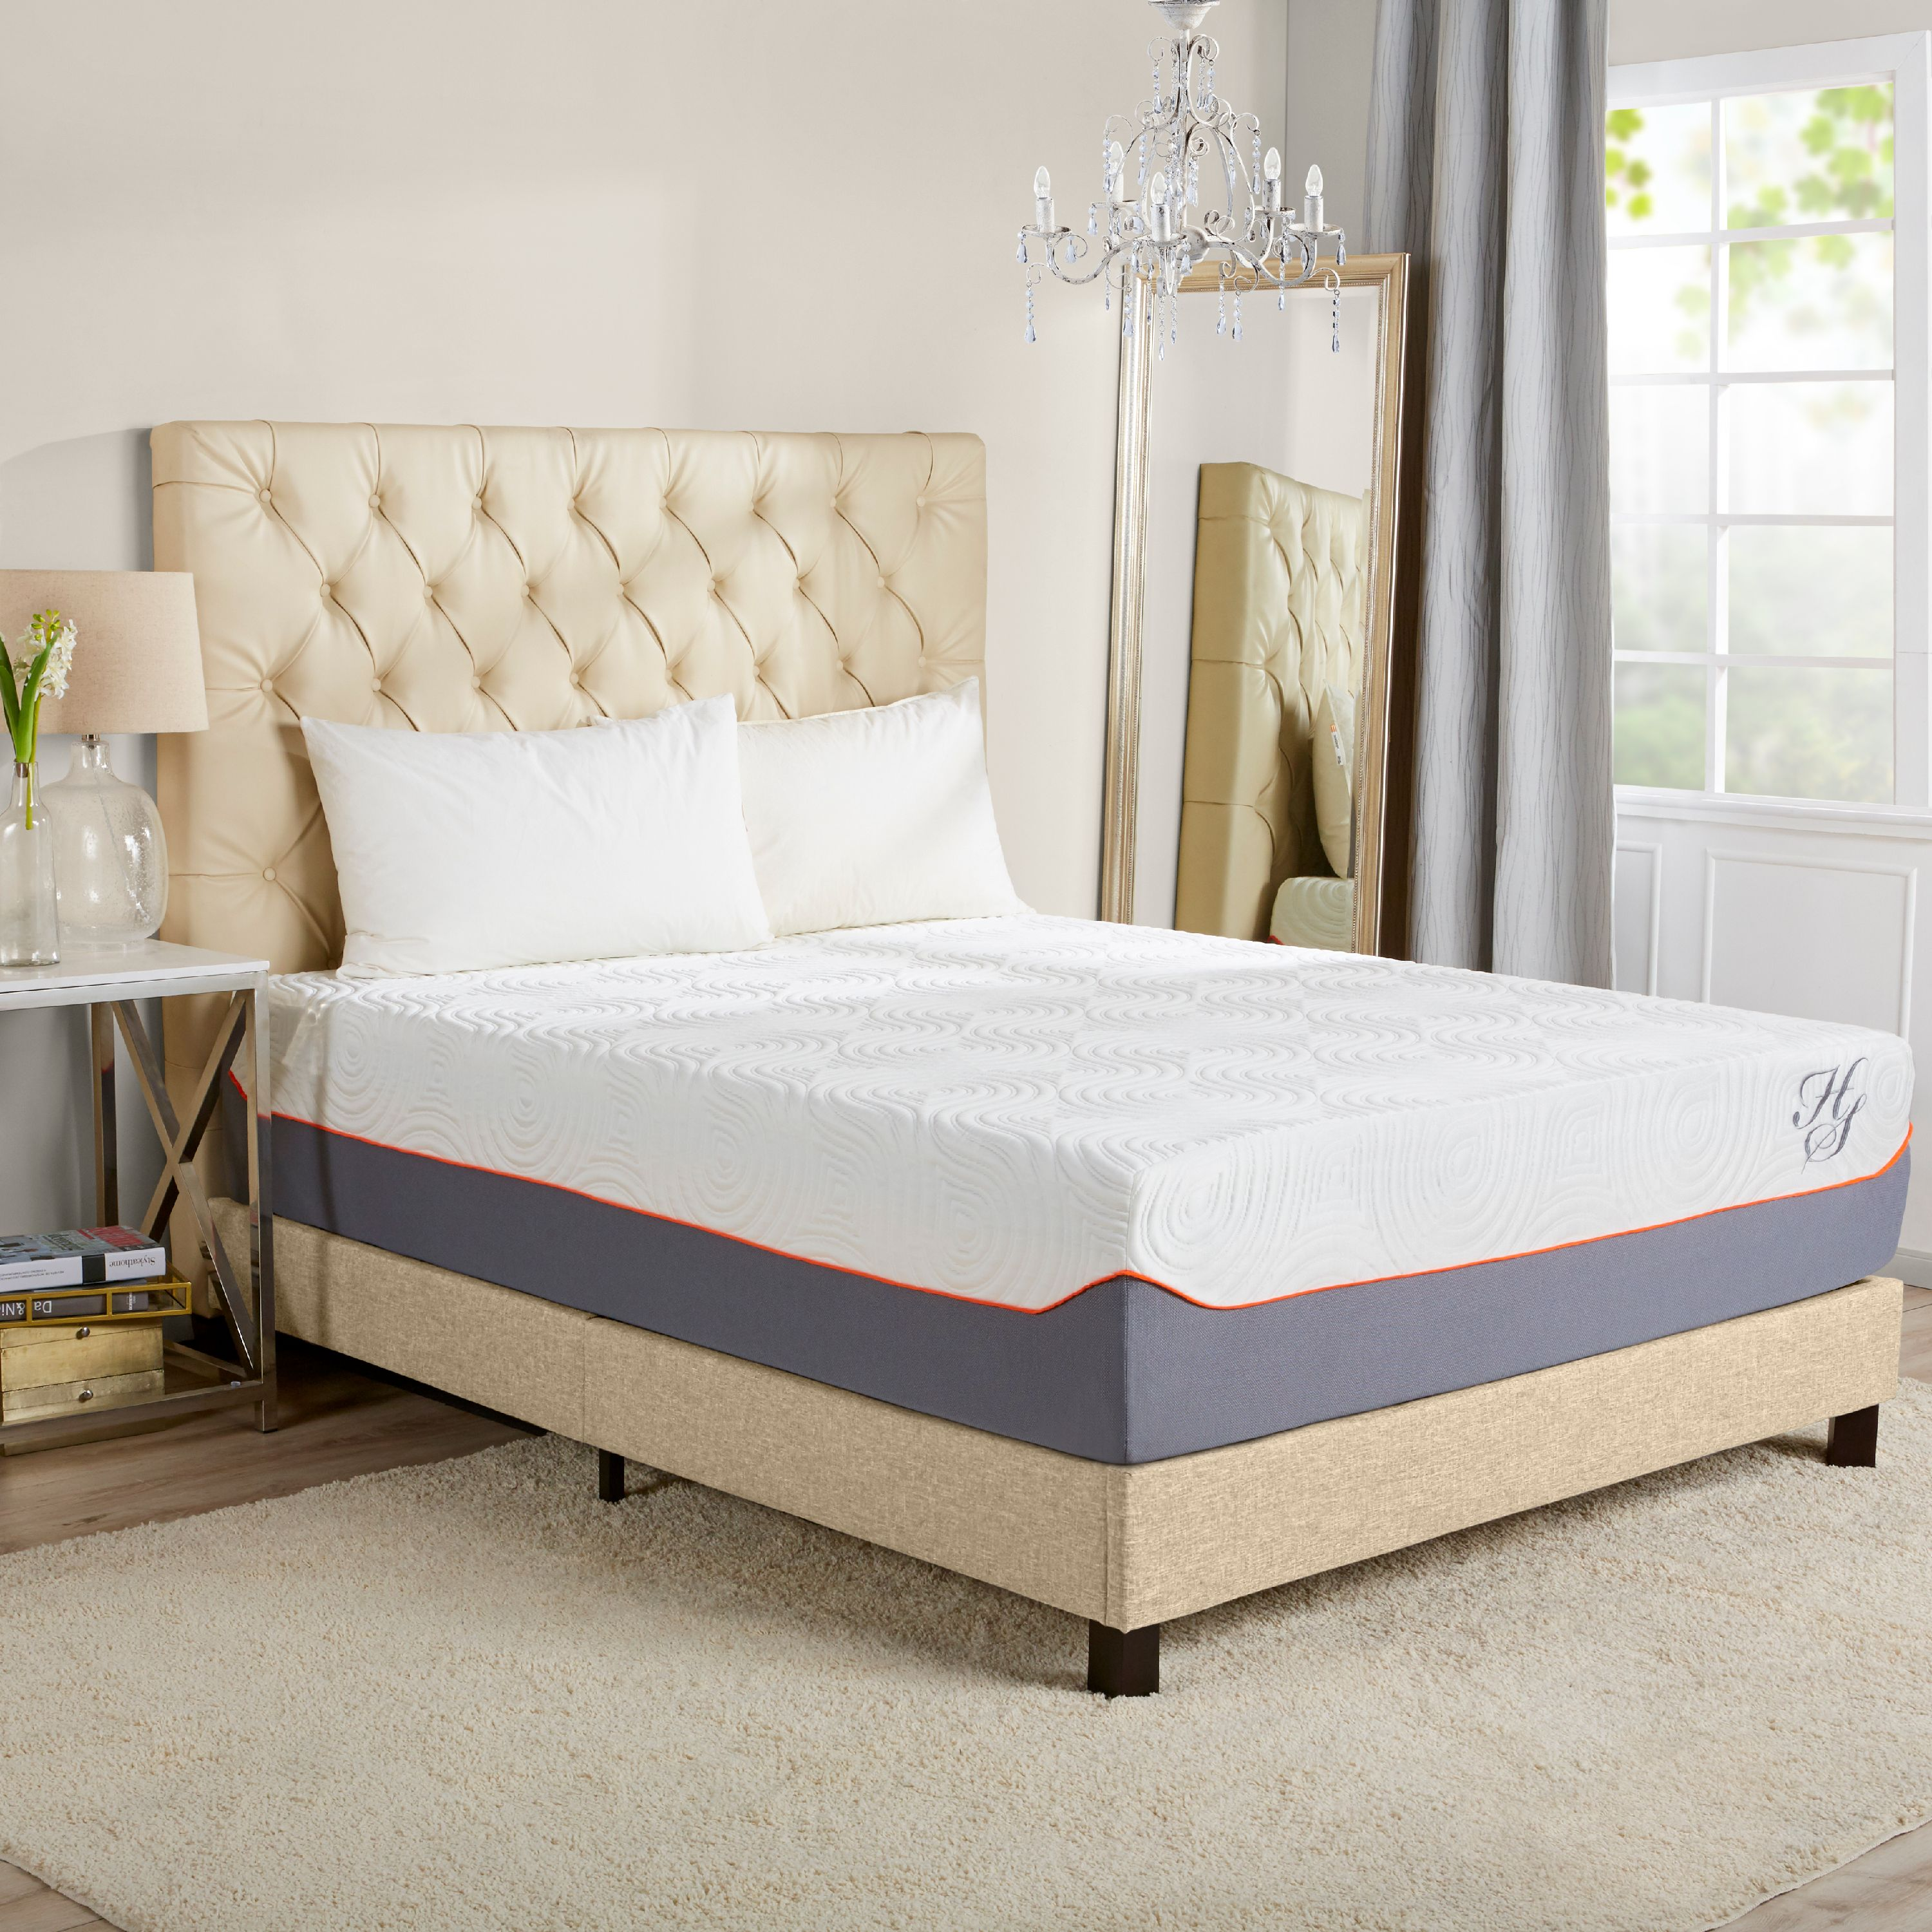 "Hotel Style 12"" Cooling Memory Foam Hybrid iCoil Spring Mattress"